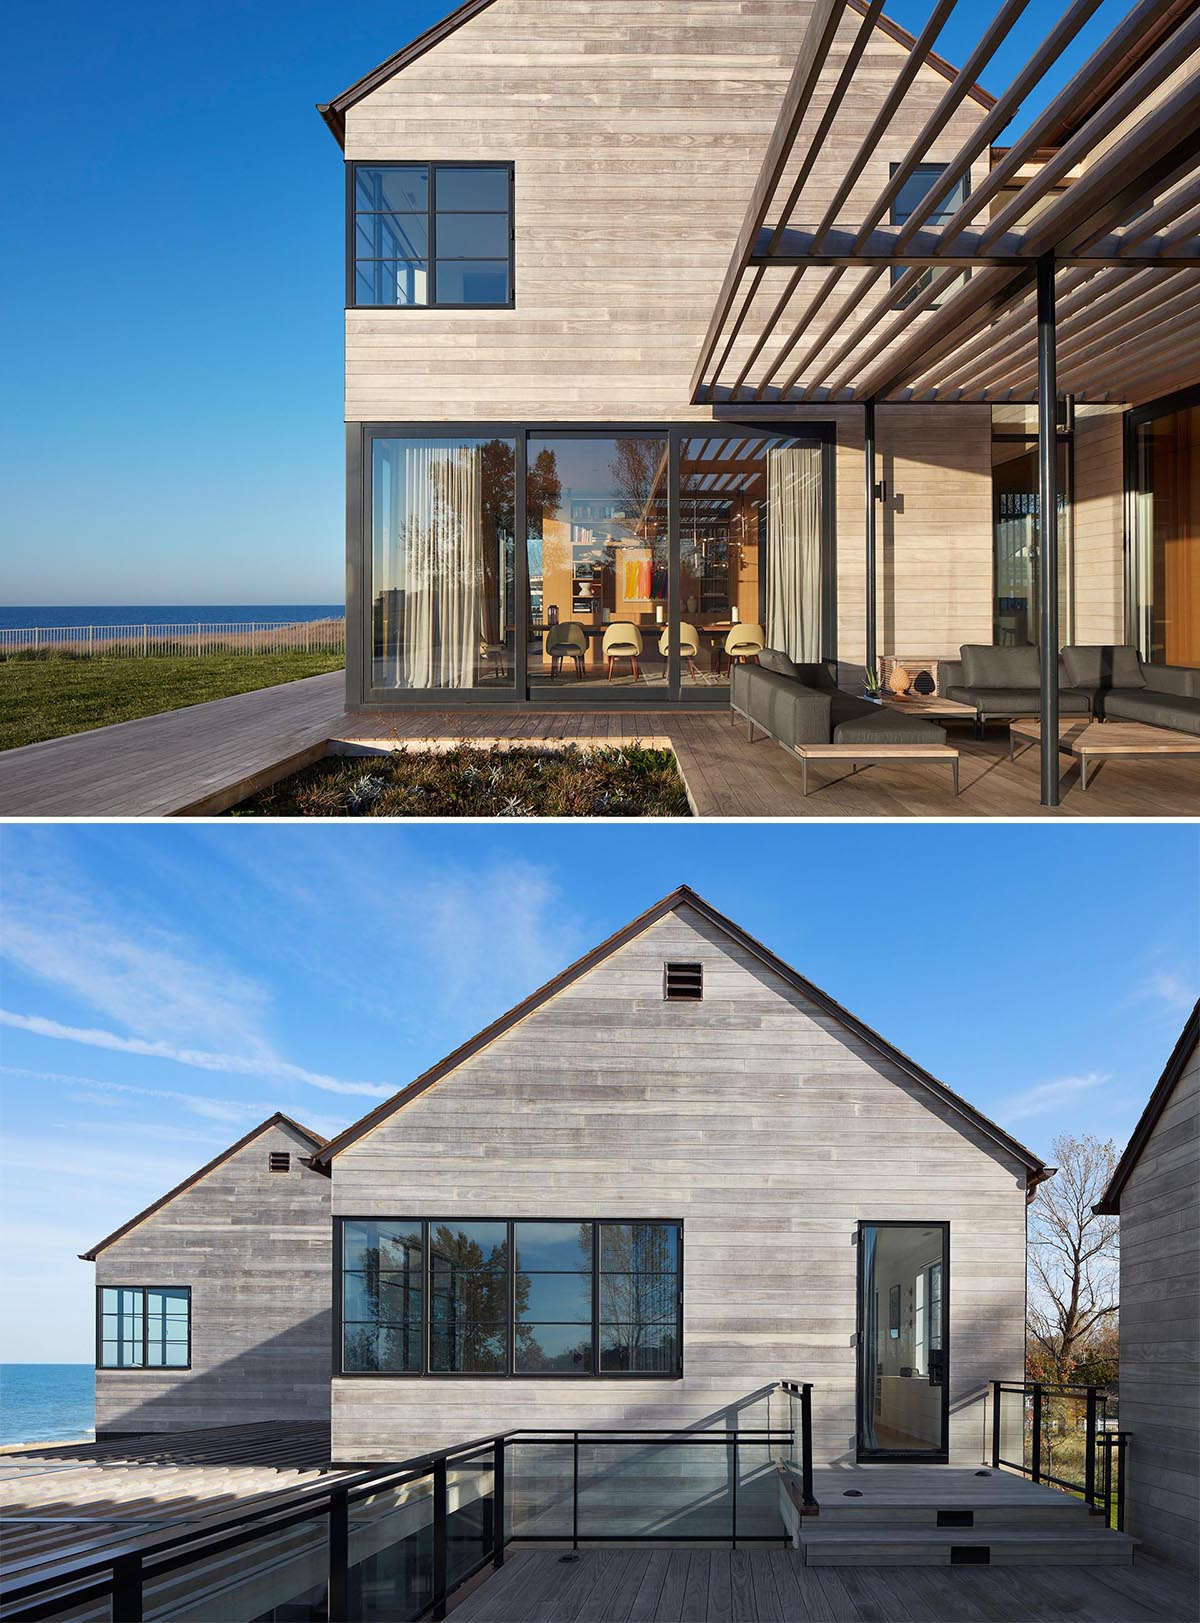 A modern house with Accoya wood siding, black window frames, wood roof shingles, and a swimming pool.